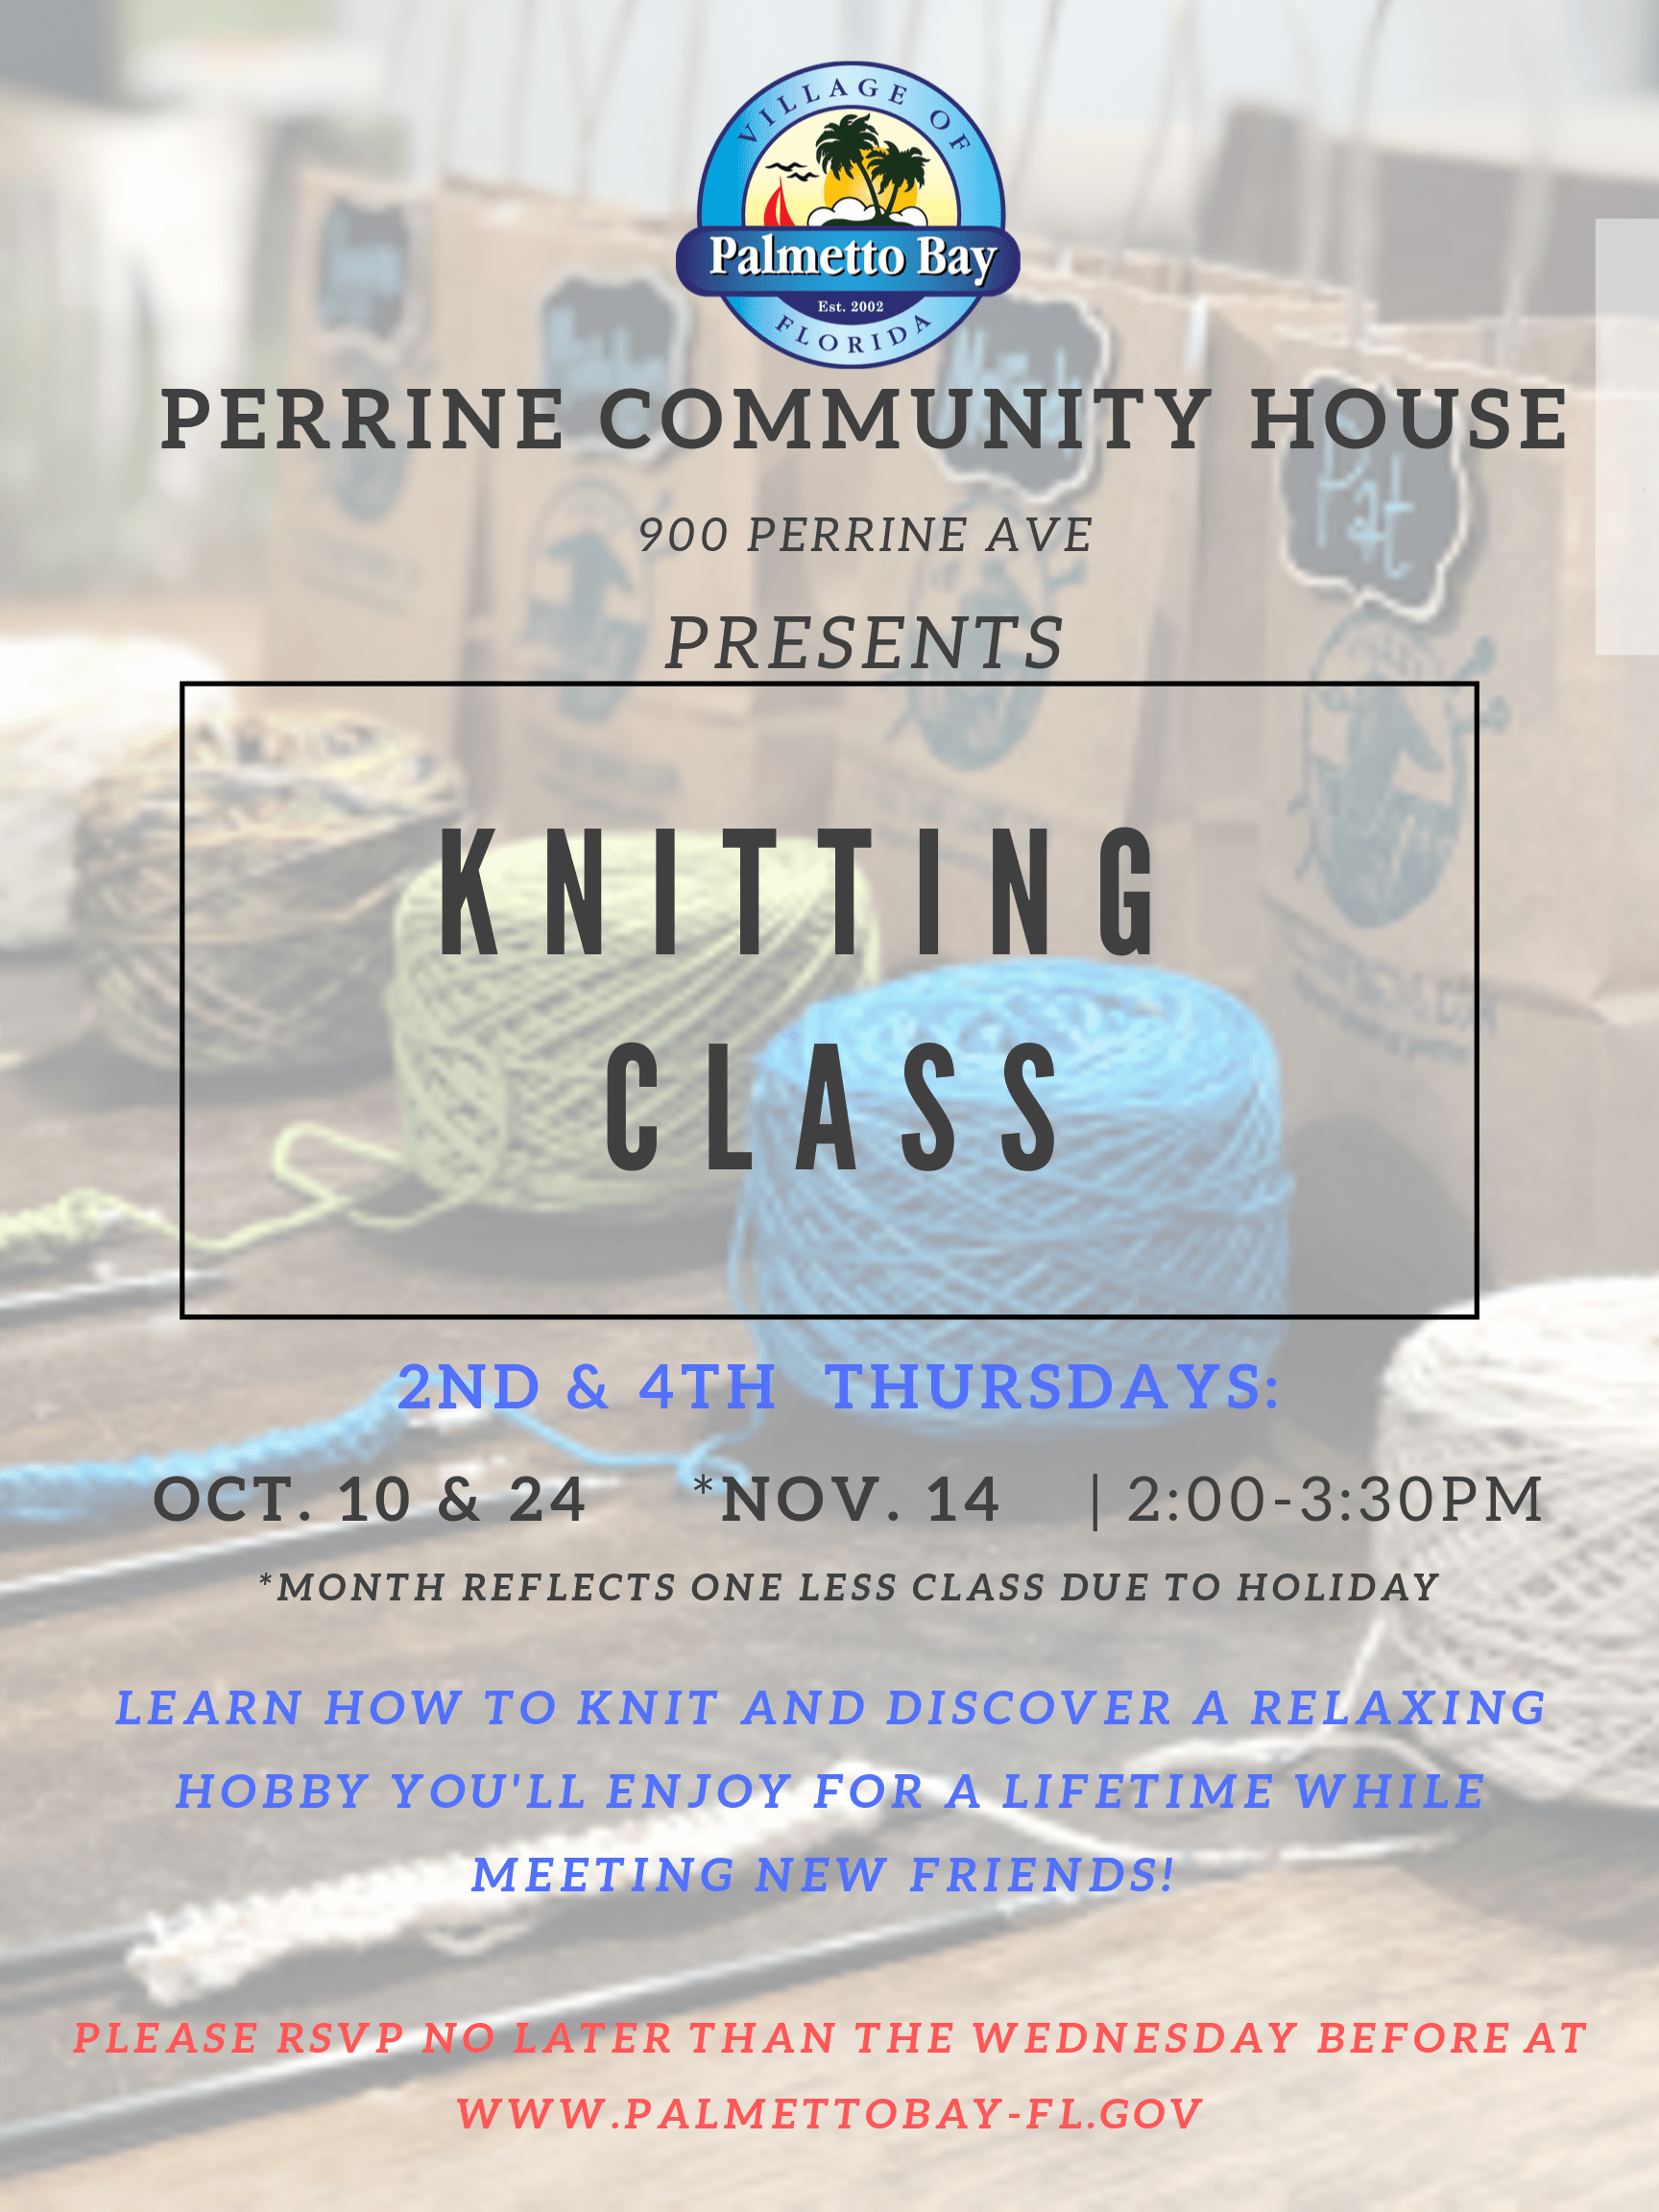 Knitting Class every 2nd and 4th Thursday of October & November at Perrine Community House from 2pm-